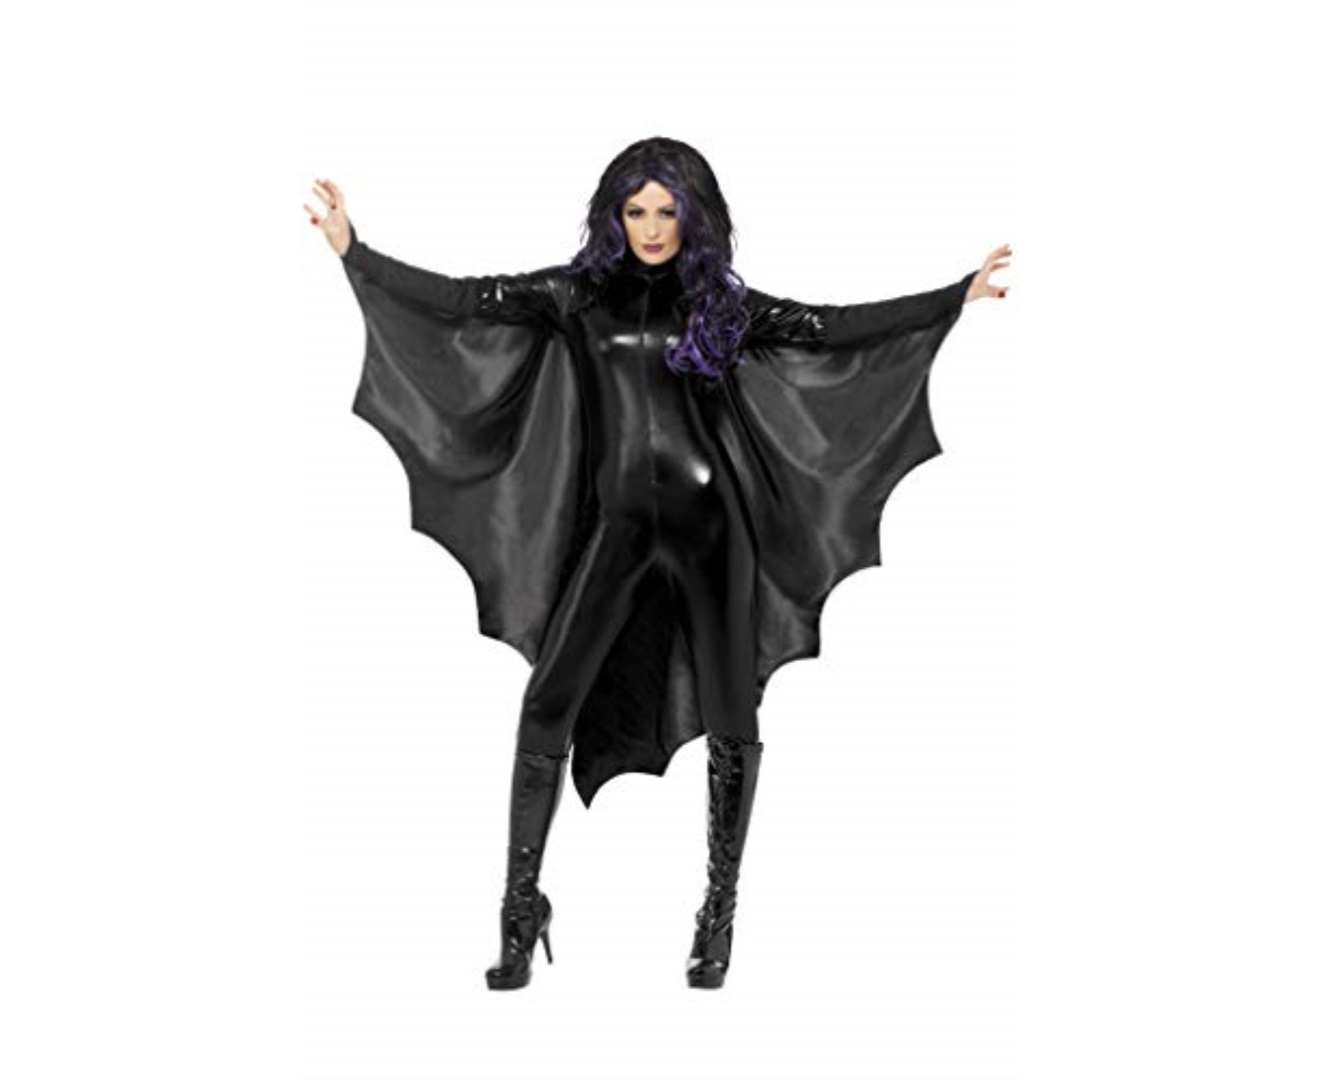 Black Vampire Bat Wings Vampiress Unisex Adult HAlloween Costume Accessory